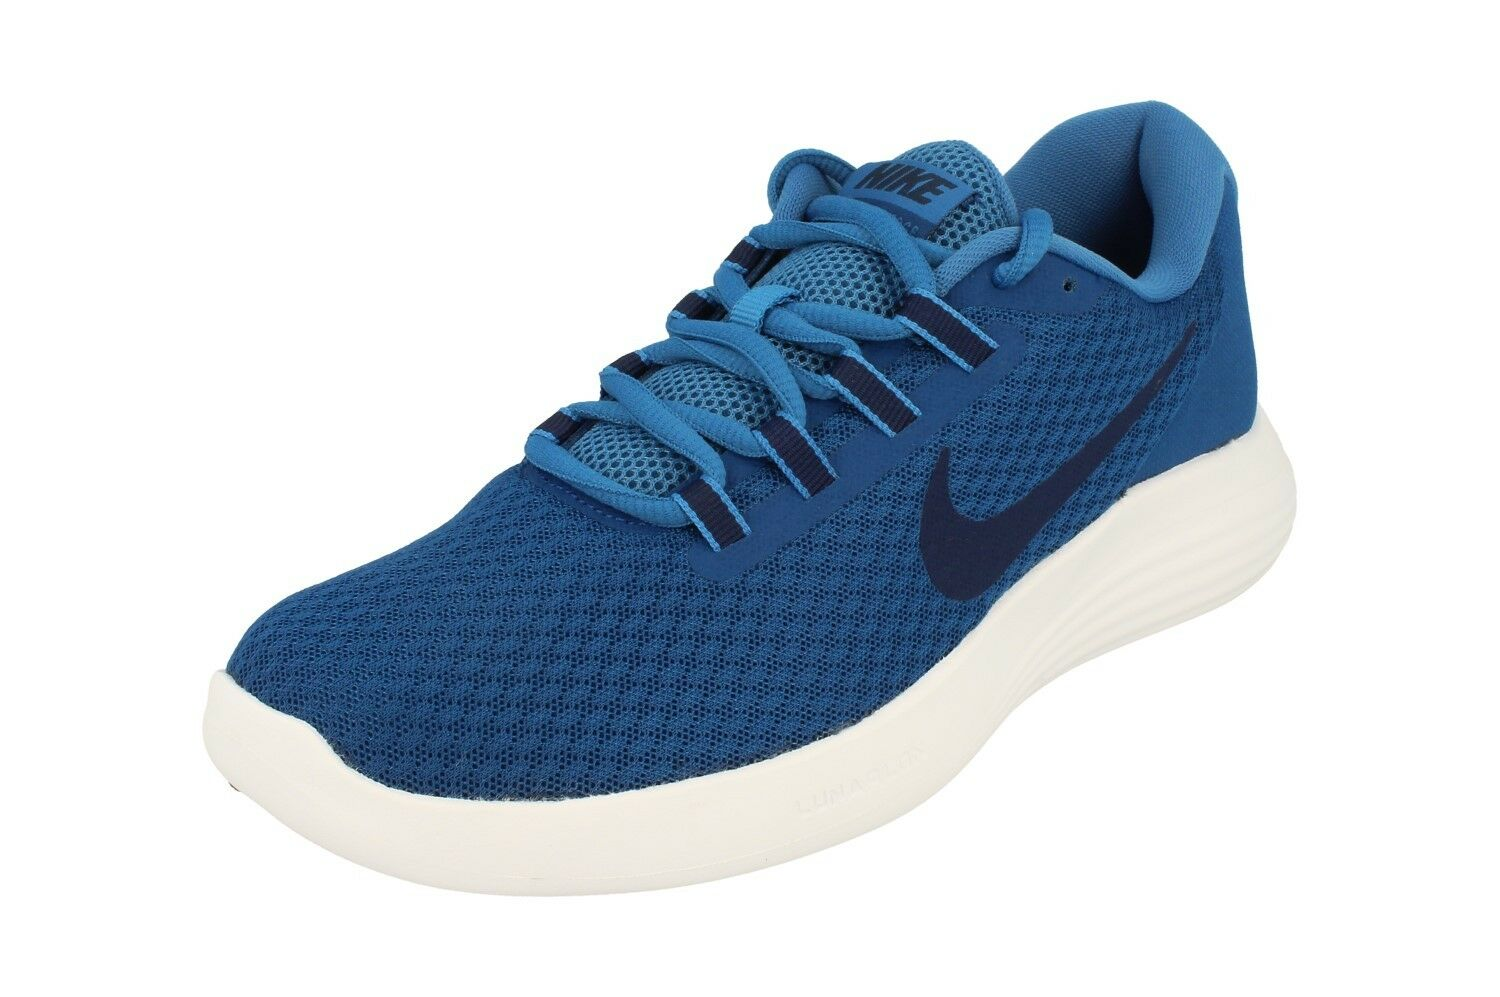 Nike Lunarconverge Mens Running Trainers Trainers Trainers 852462 Sneakers shoes 403 173694